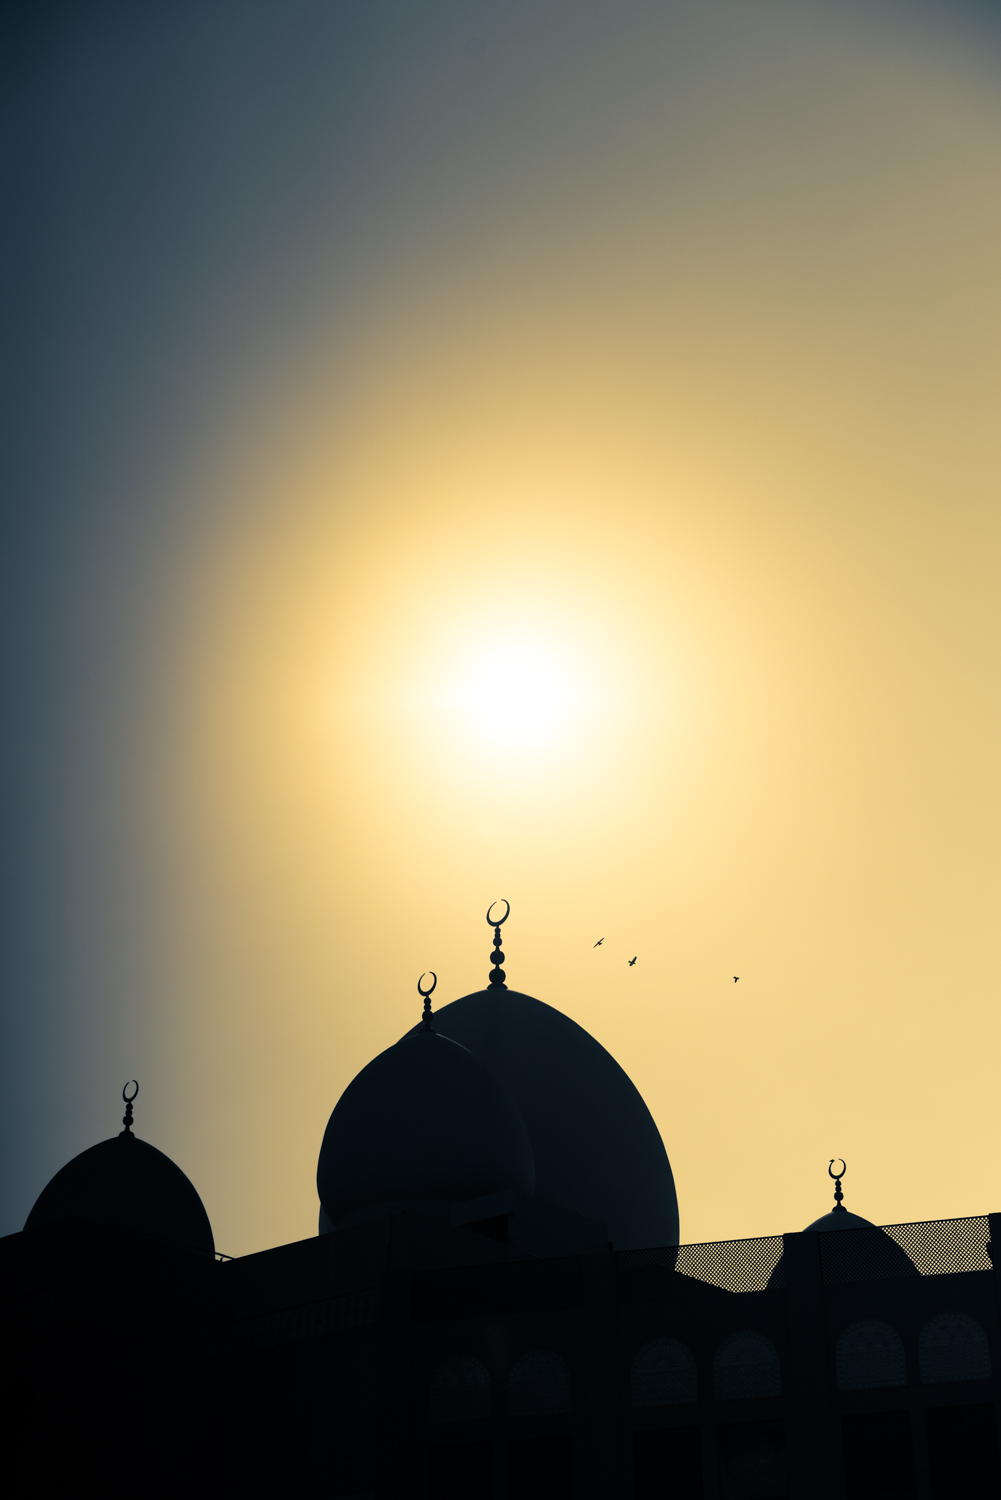 A mosques' golden silhouette against the sunset.  Sony A7RII, Zeiss 55mm f/1.8 (iso64, f/6.3, 1/8000s)